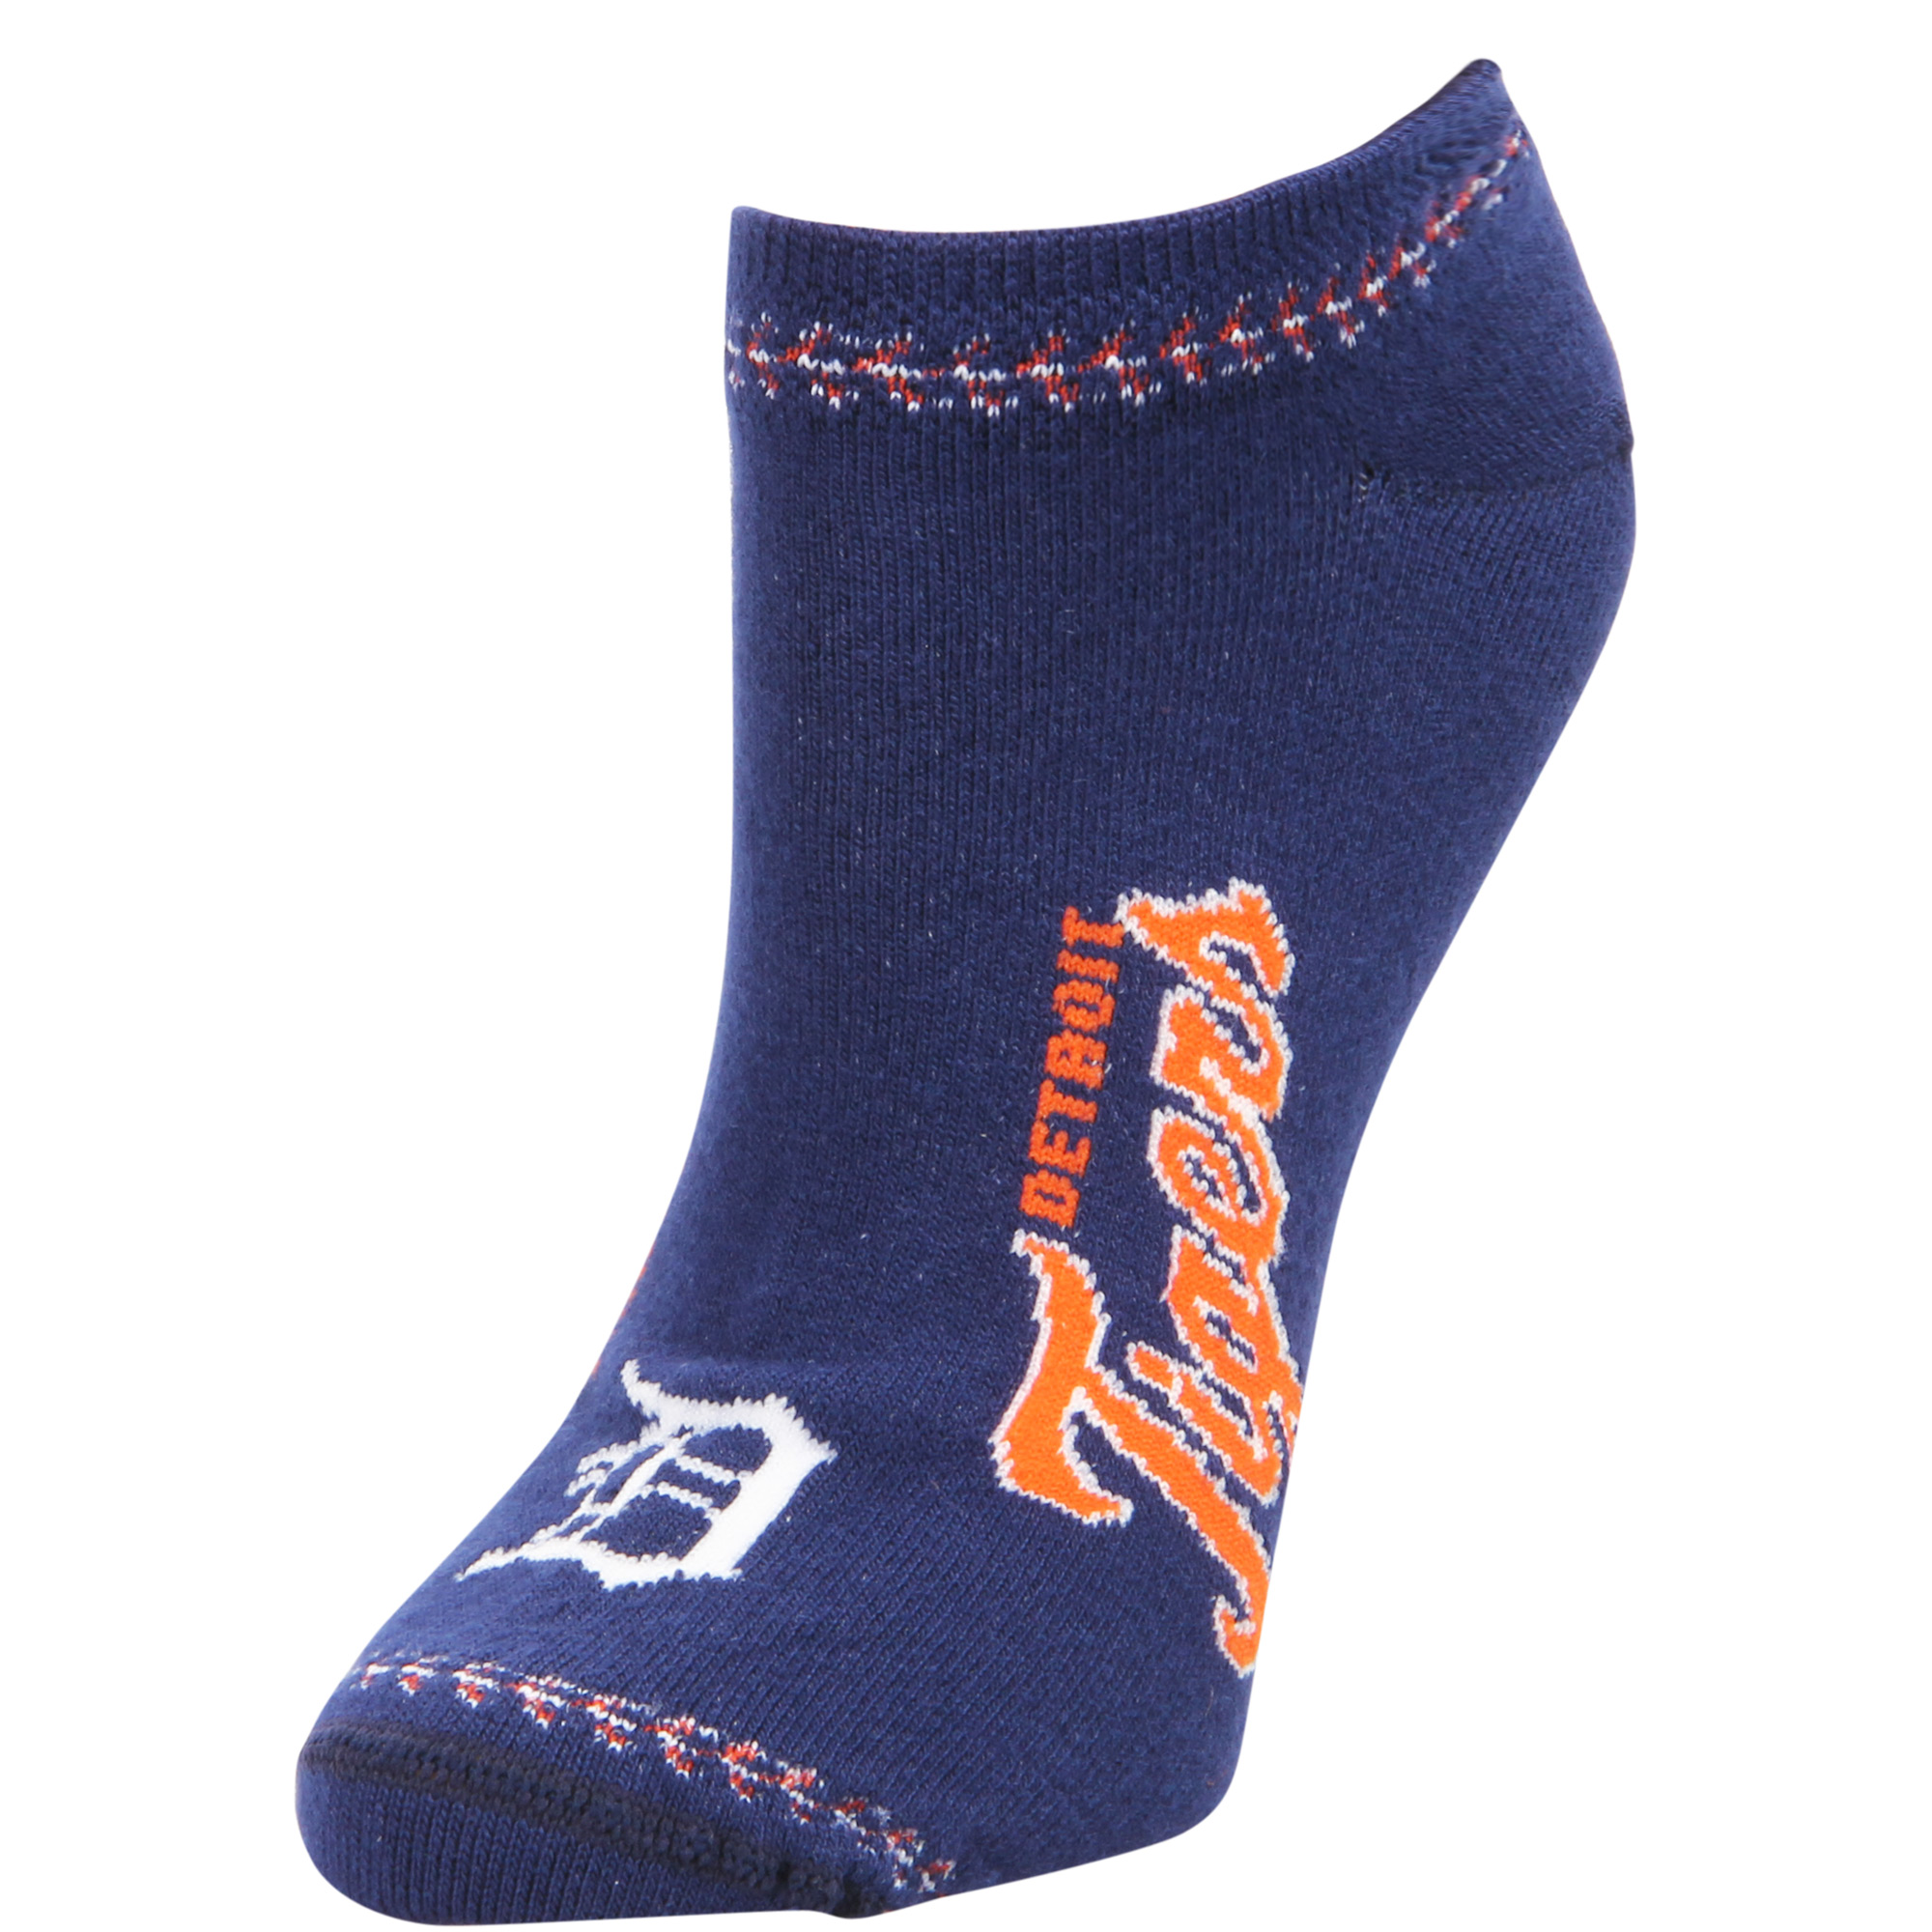 Detroit Tigers For Bare Feet Women's Stitch Ankle Socks - M